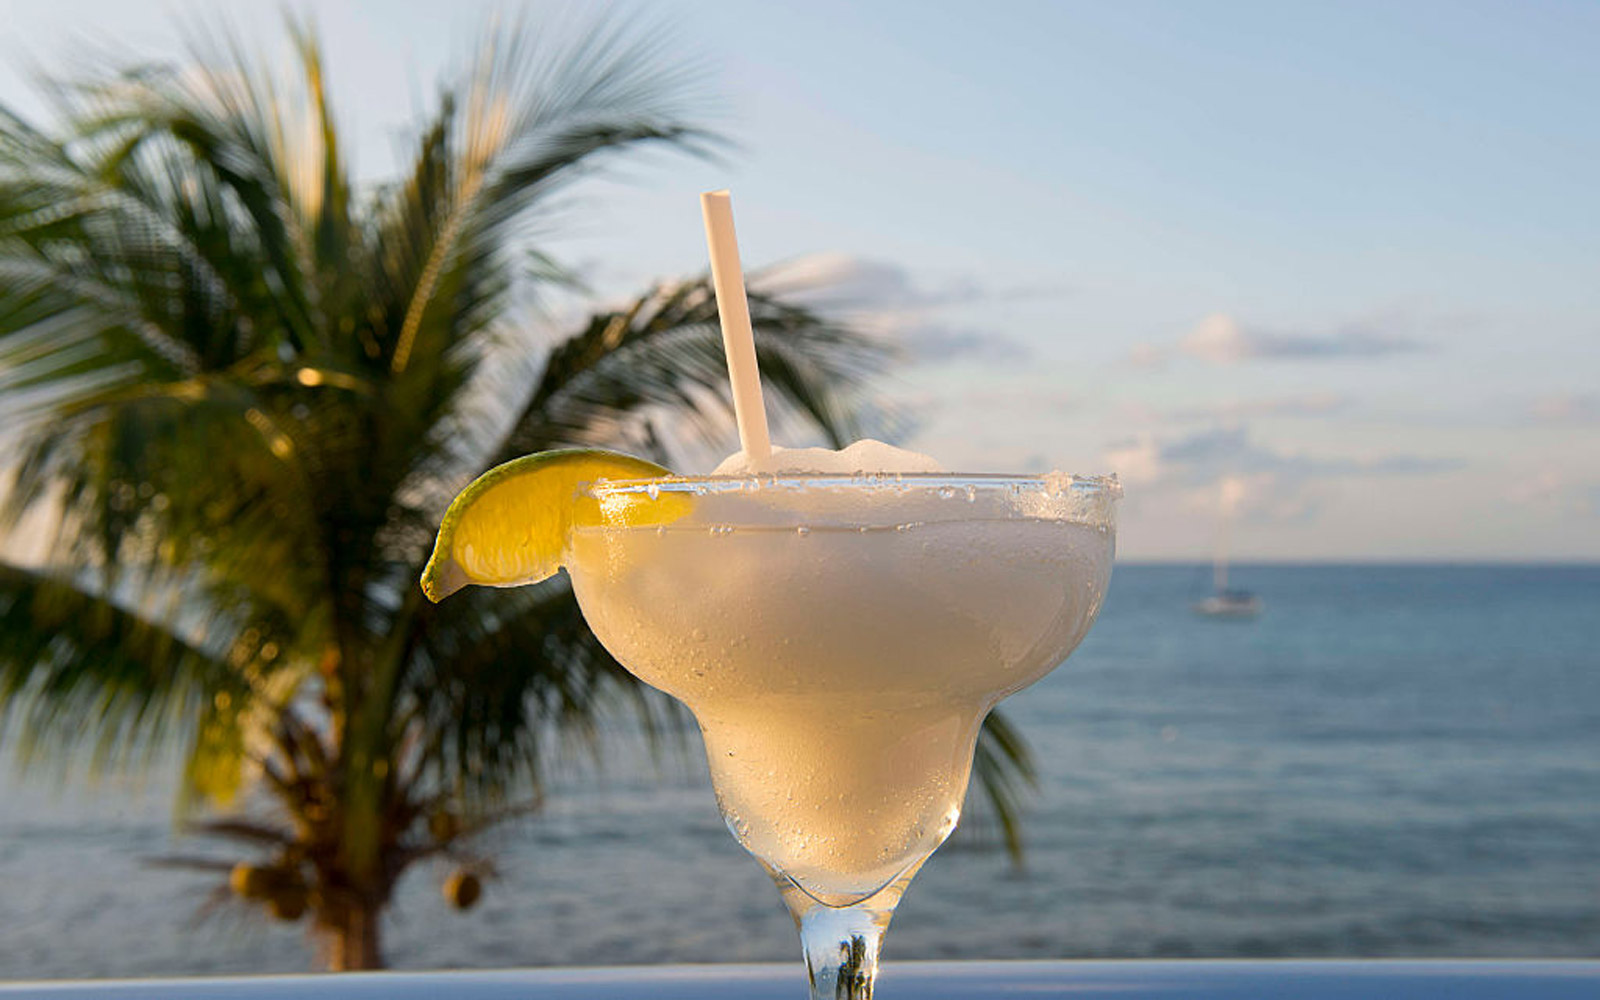 MEXICO - 2016/01/08: A margarita drink in Playa del Carmen on the east coast of the Yucat·n Peninsula on the Caribbean Sea in the state of Quintana Roo, Mexico. (Photo by Wolfgang Kaehler/LightRocket via Getty Images)